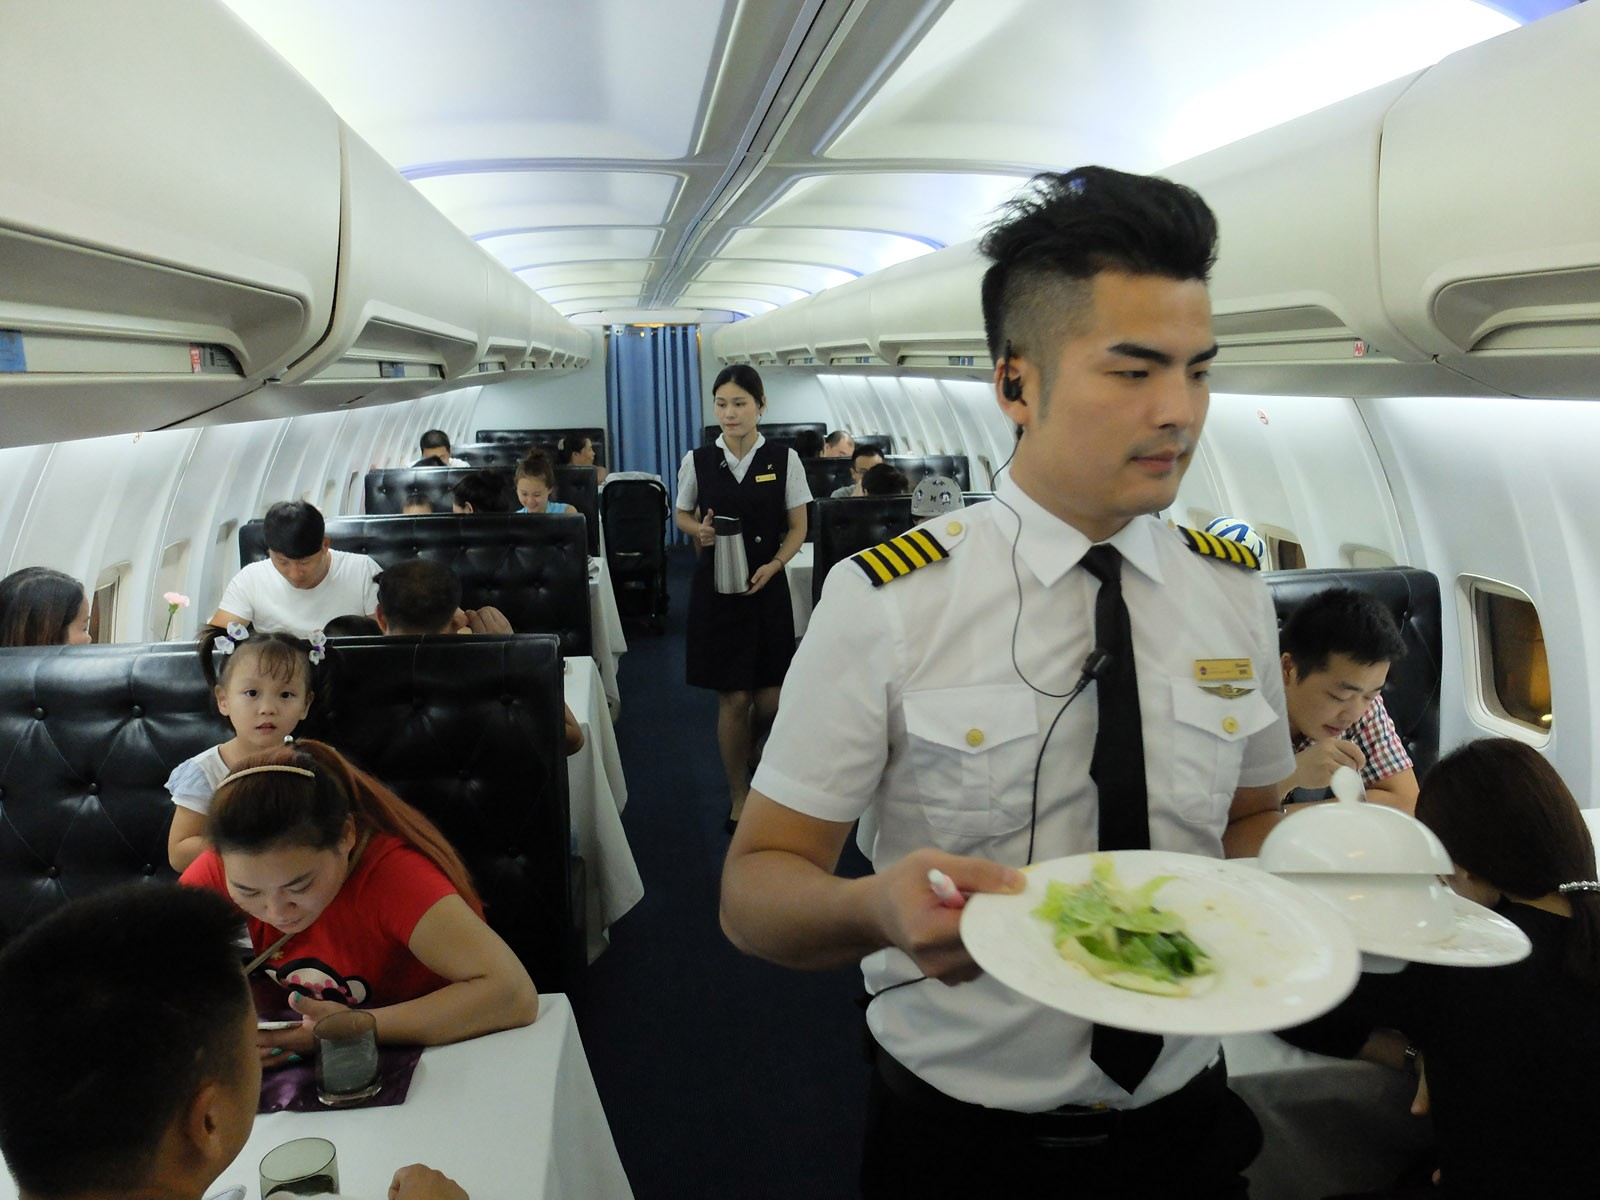 airplane_restaurant_dscf6276